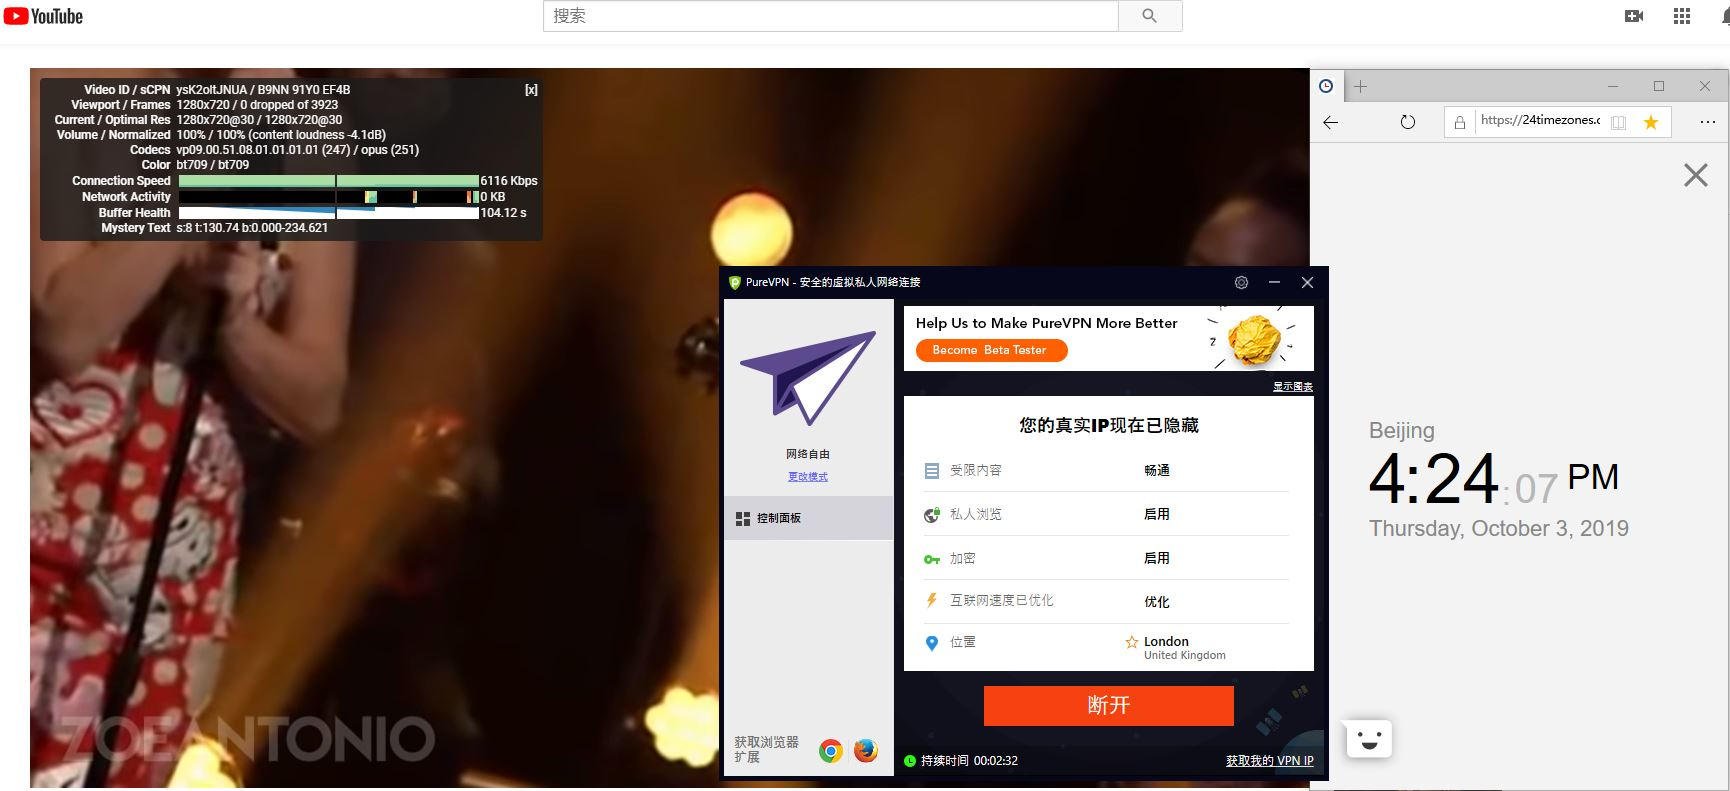 PureVPN Windows 英国 中国VPN翻墙 科学上网 YouTube测速 20191003